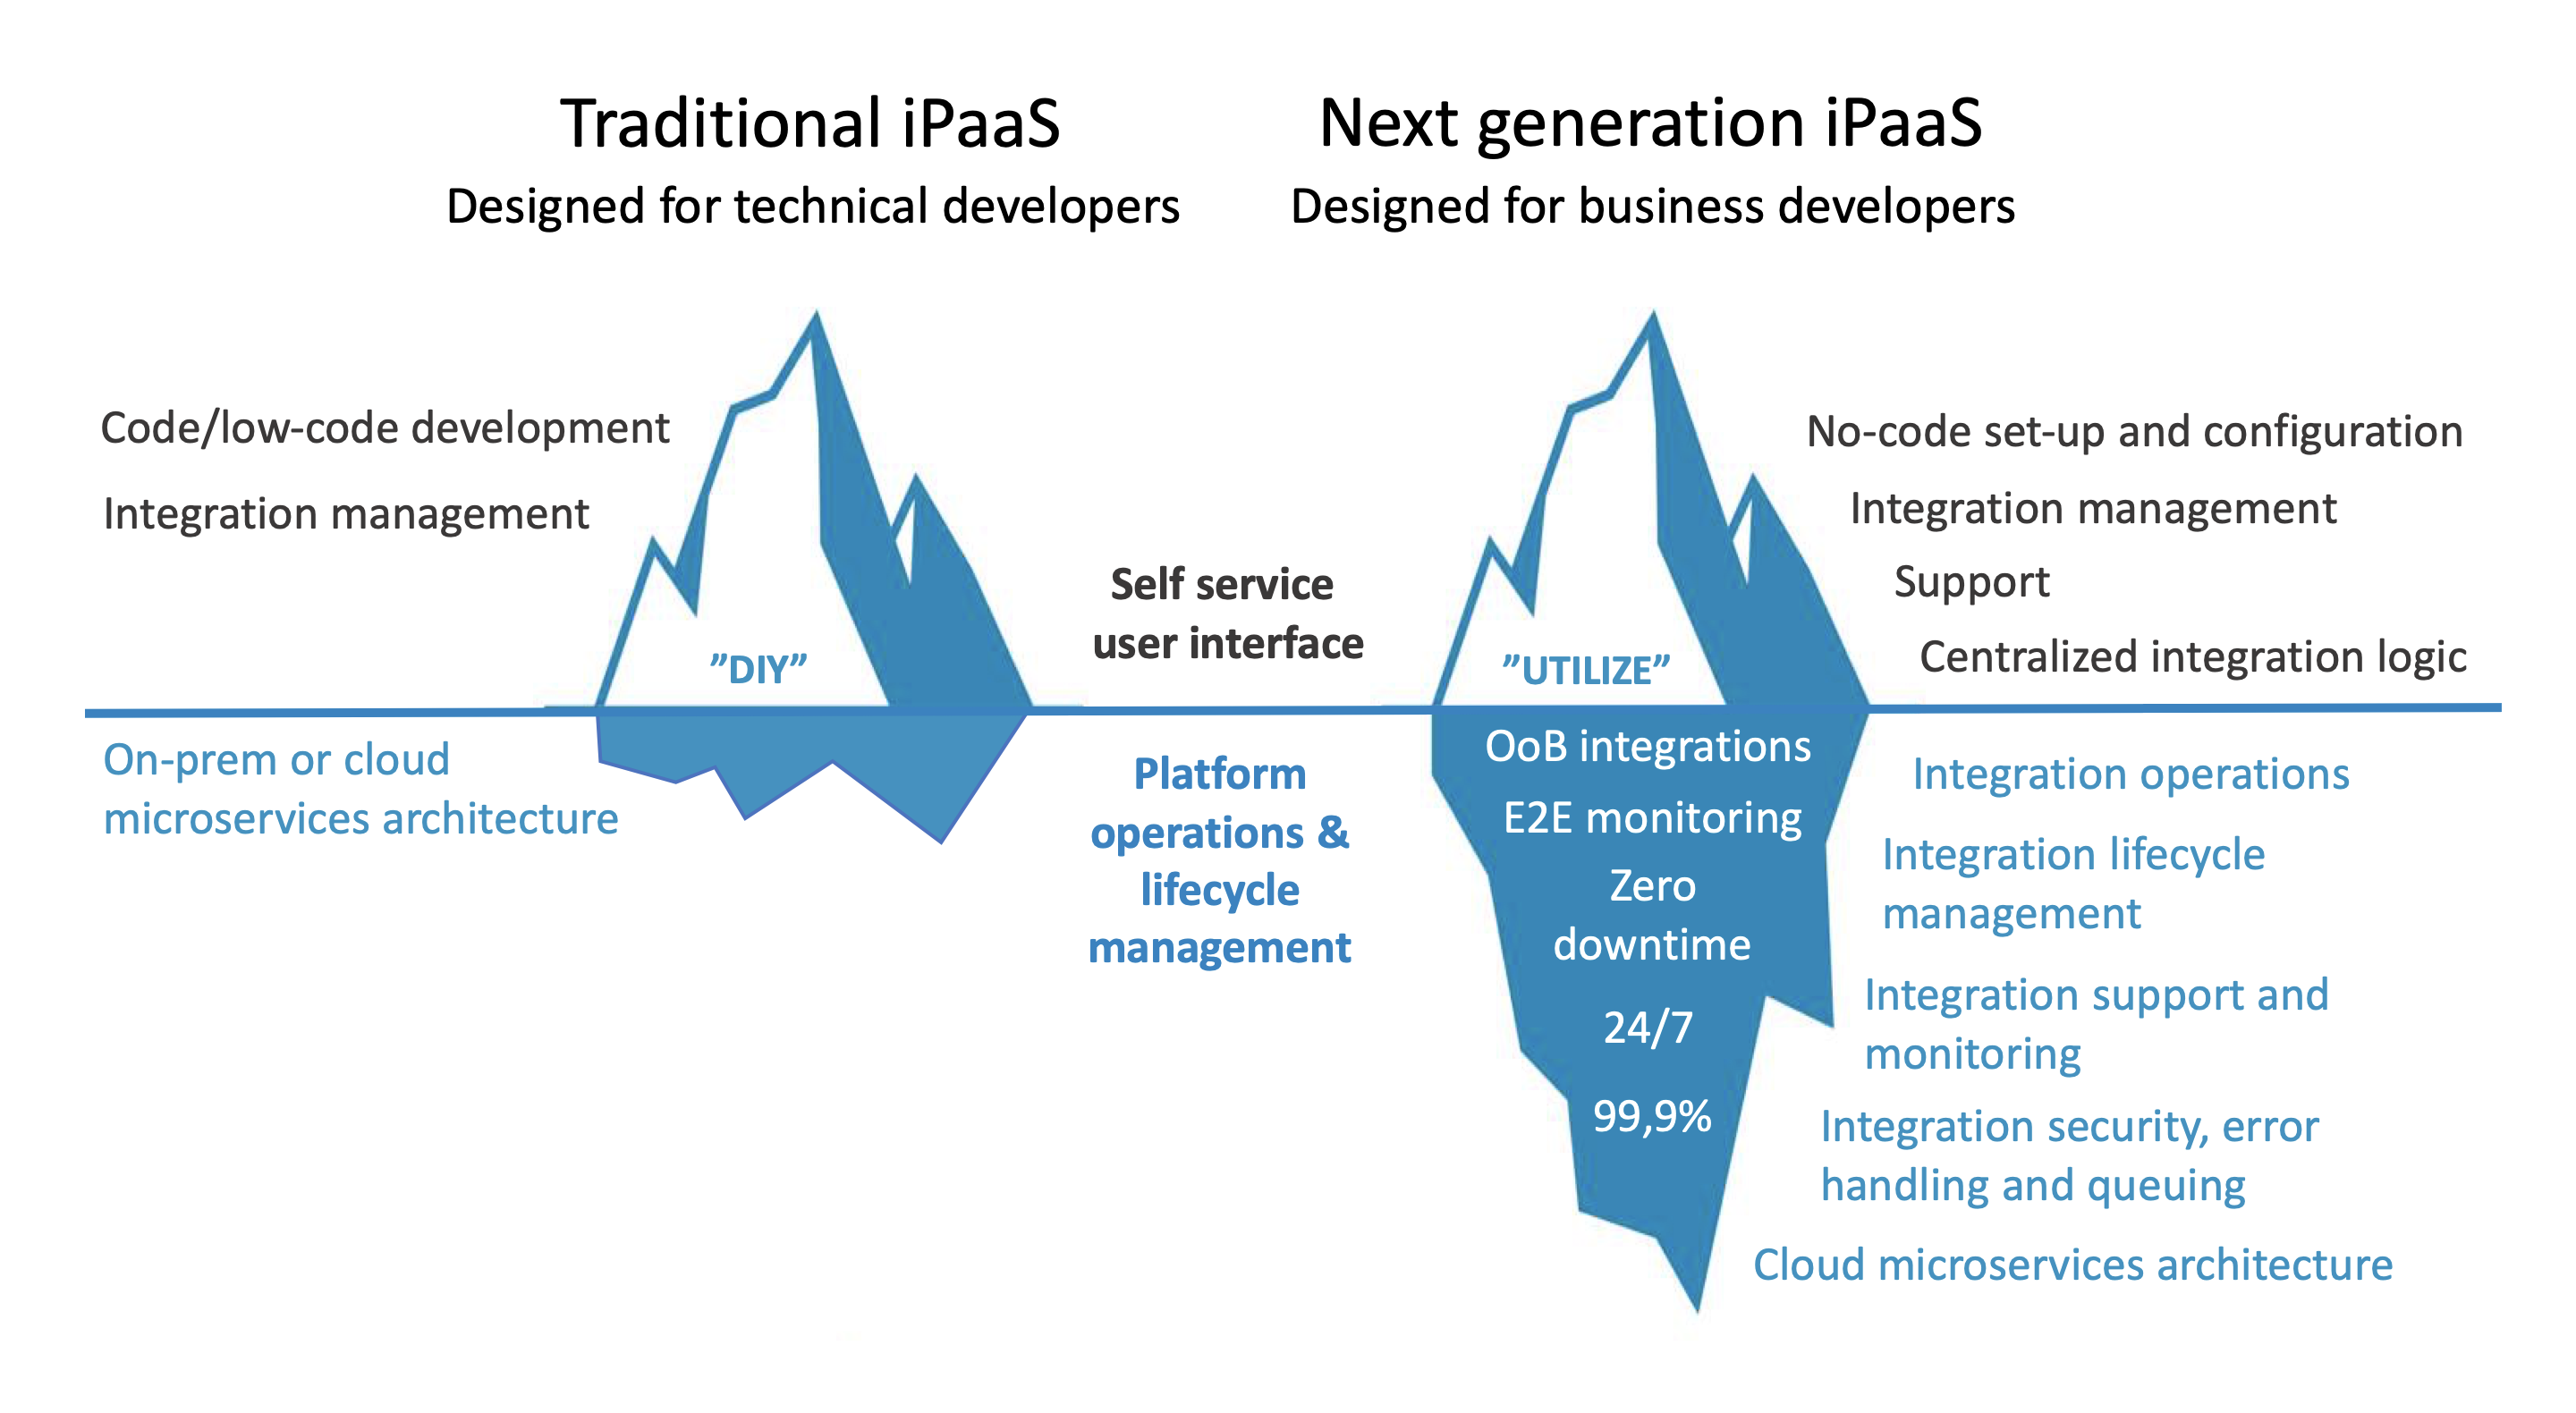 iPaas vs next gen iPaaS